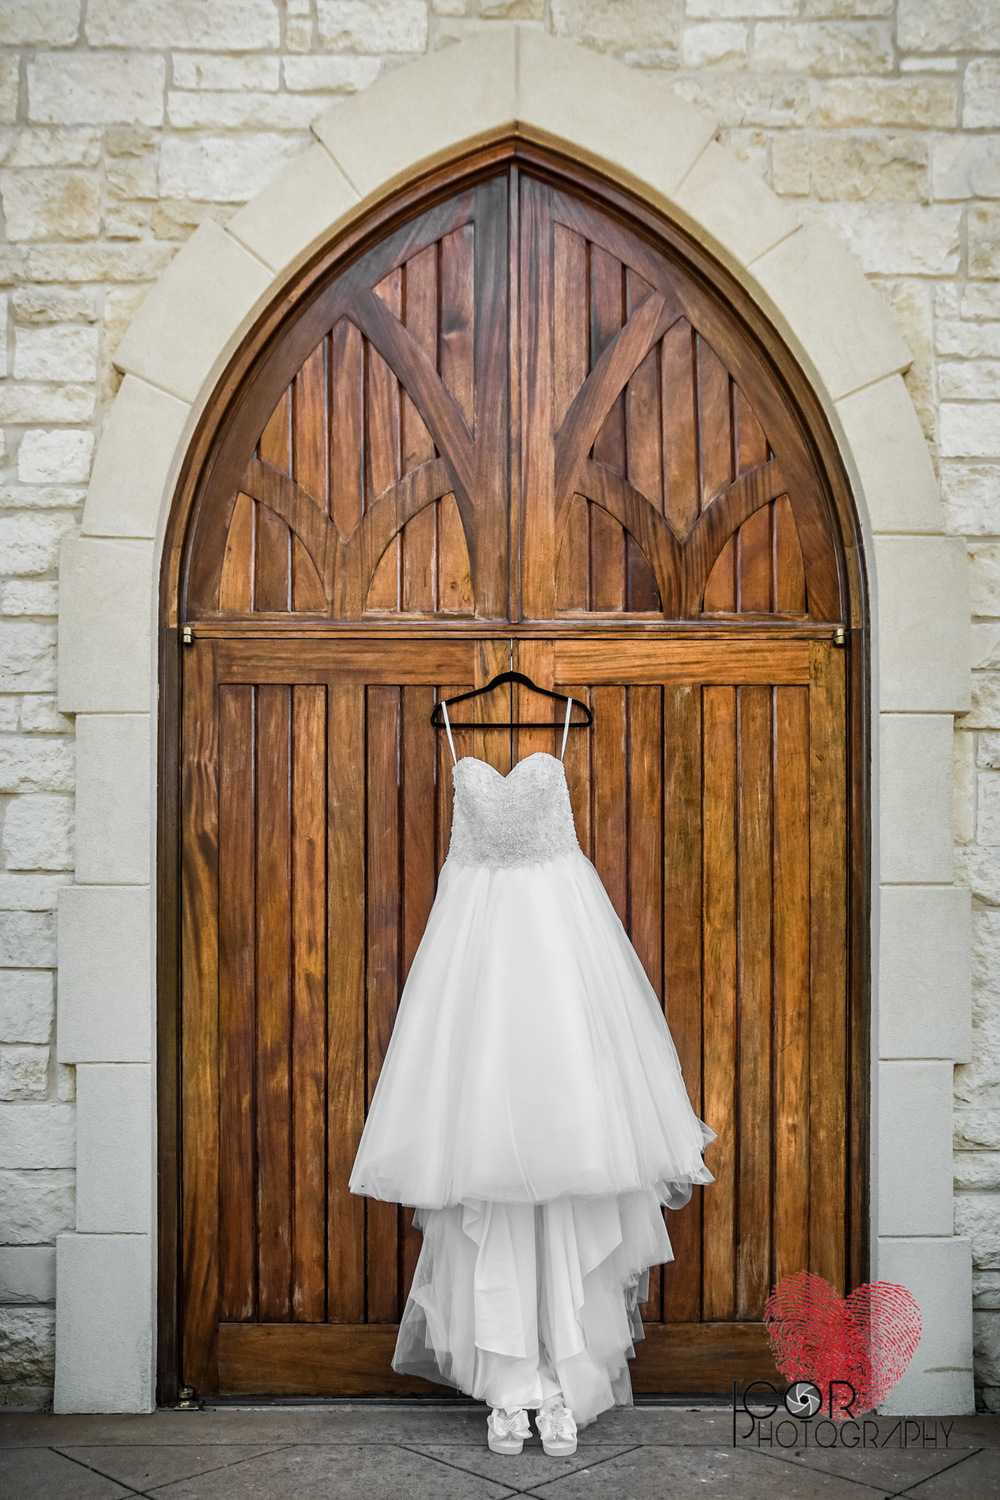 Wedding dress hanging at the chapel door